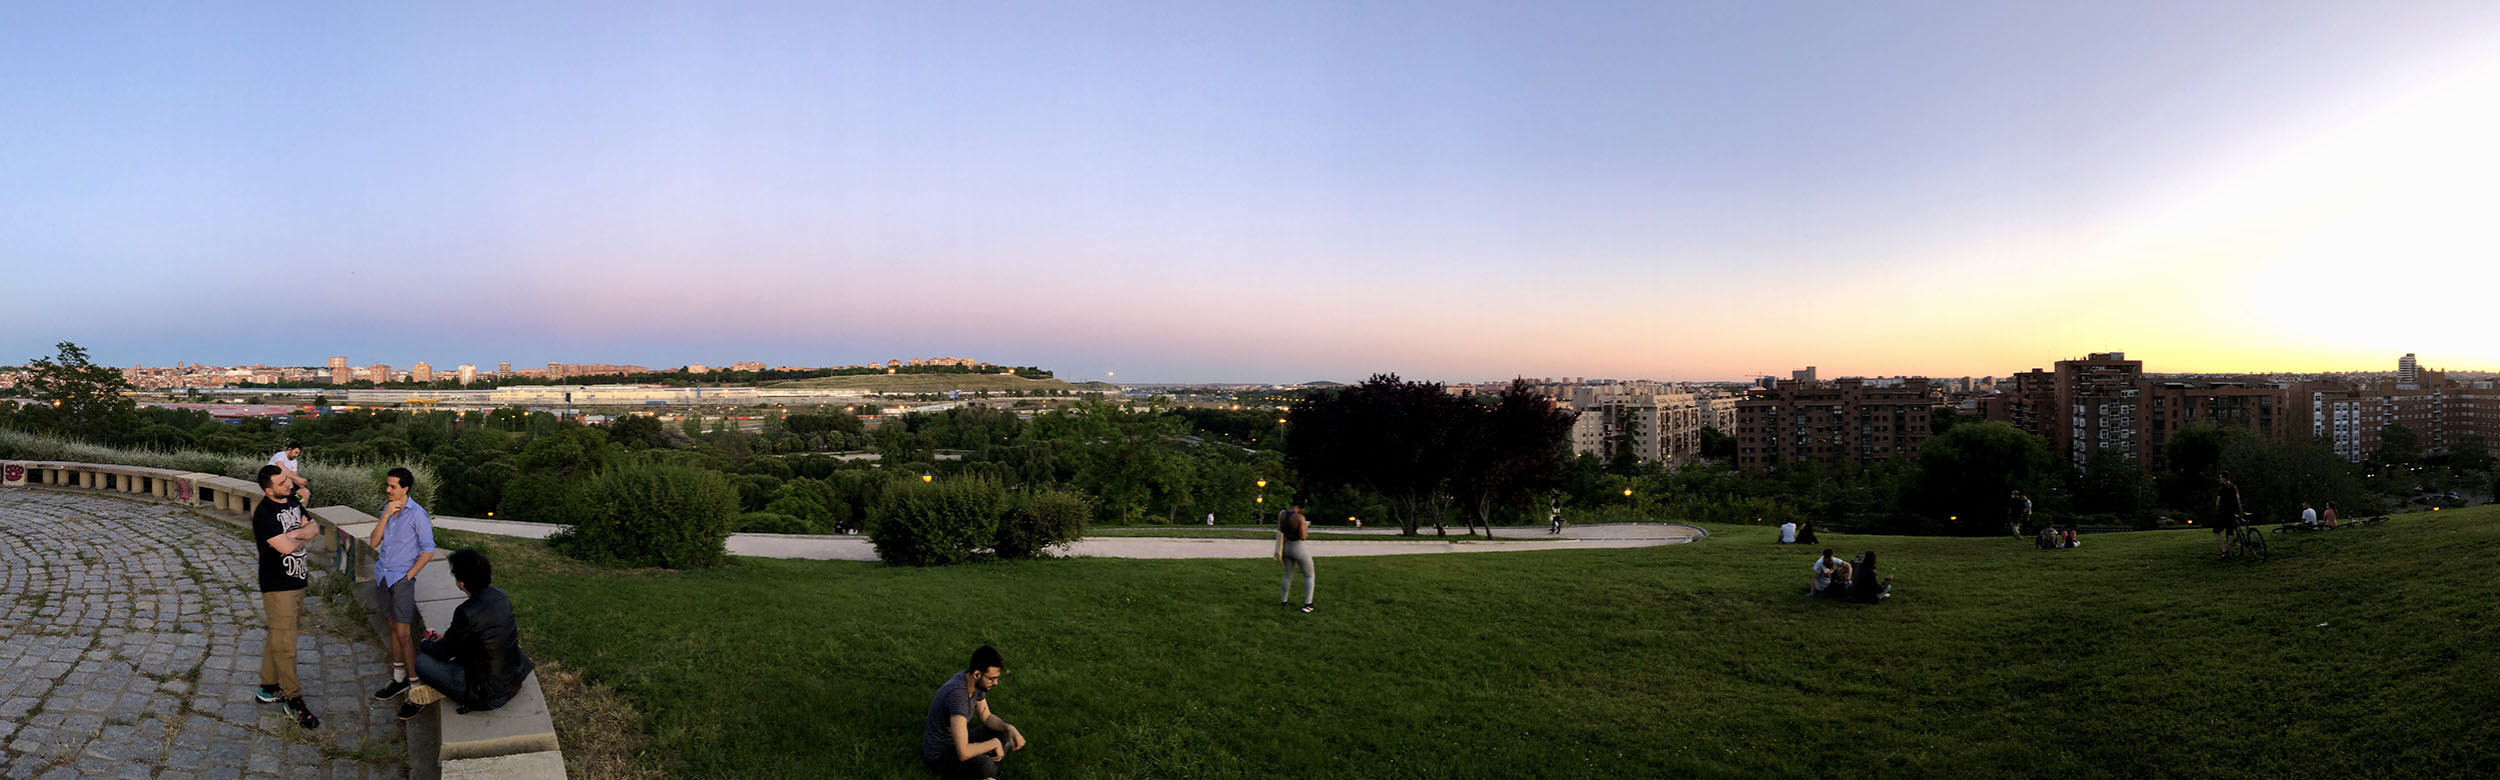 A panorama over the south of Madrid during sunset.